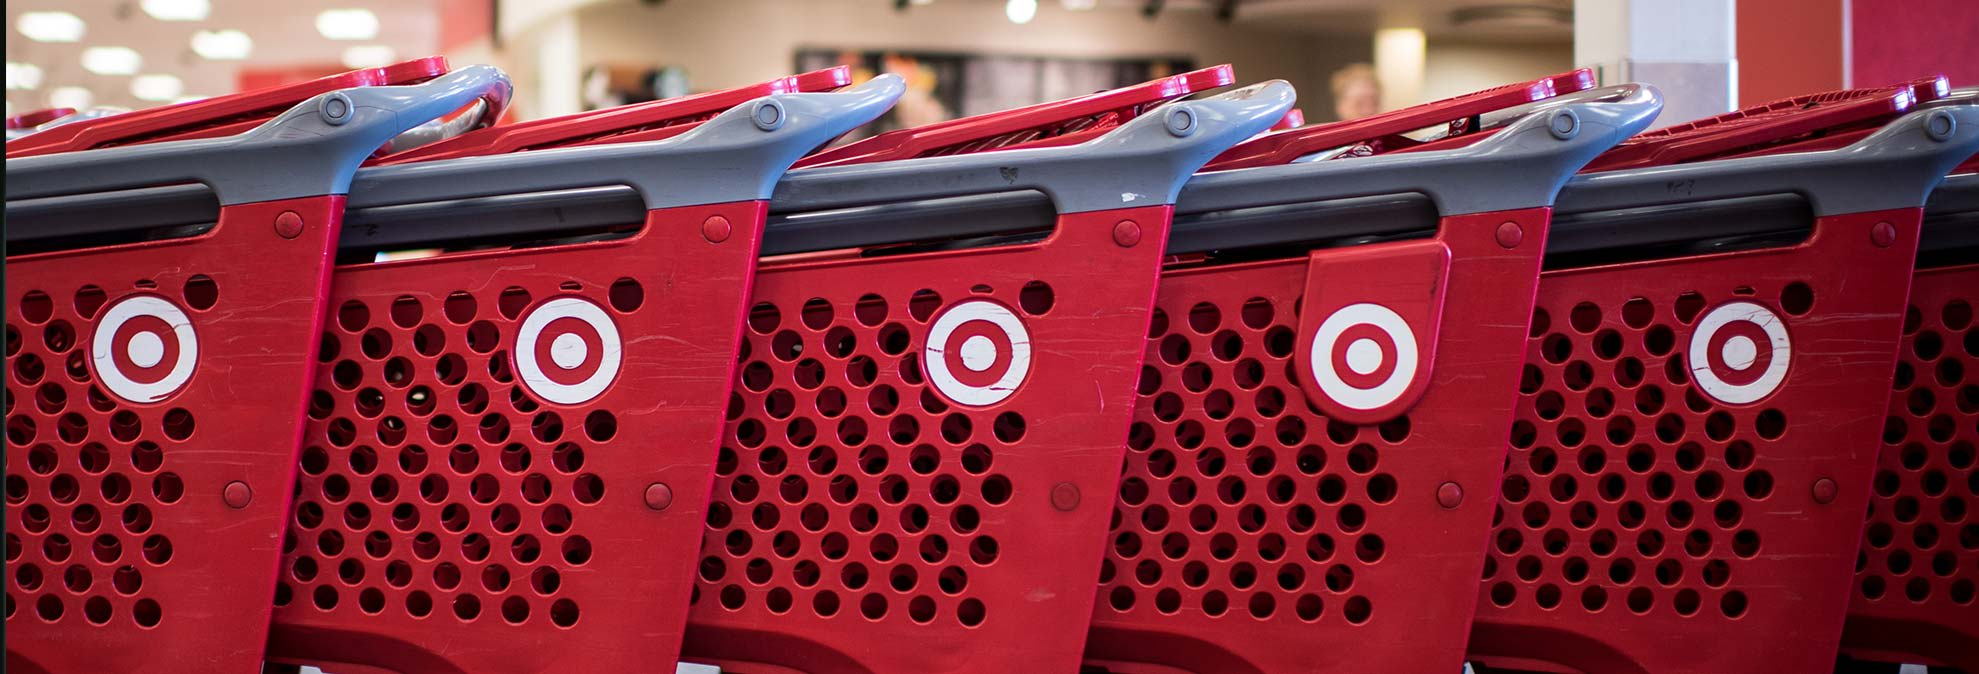 Target S Black Friday Smartphone Deals Consumer Reports